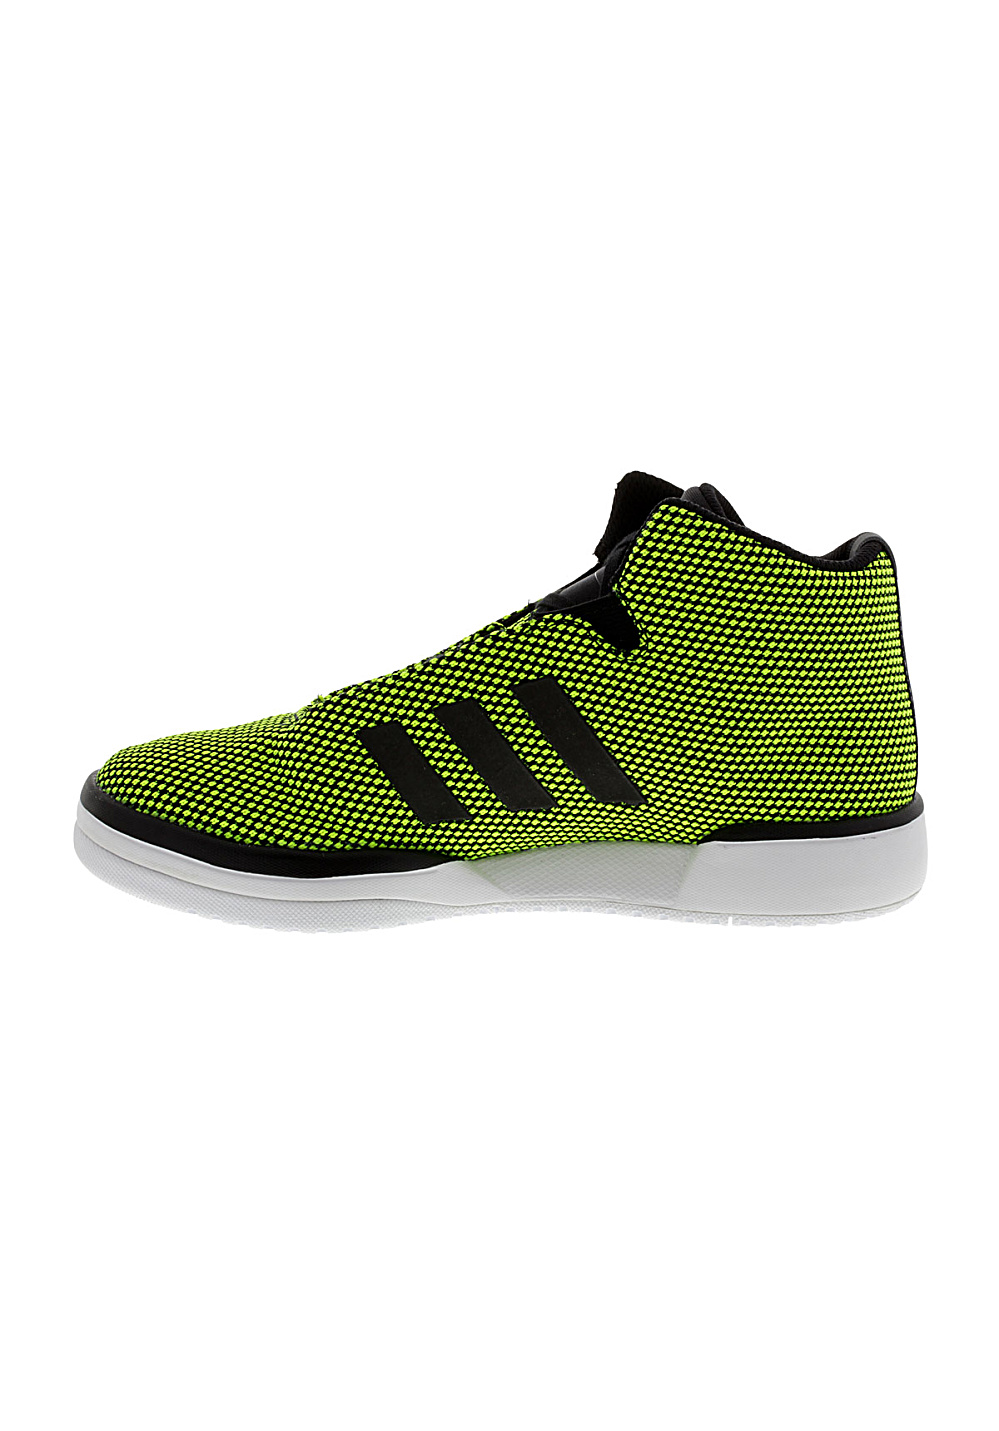 outlet store 4a28f 9fbc5 ADIDAS ORIGINALS Veritas Mid K - Sneakers - Green - Planet Sports